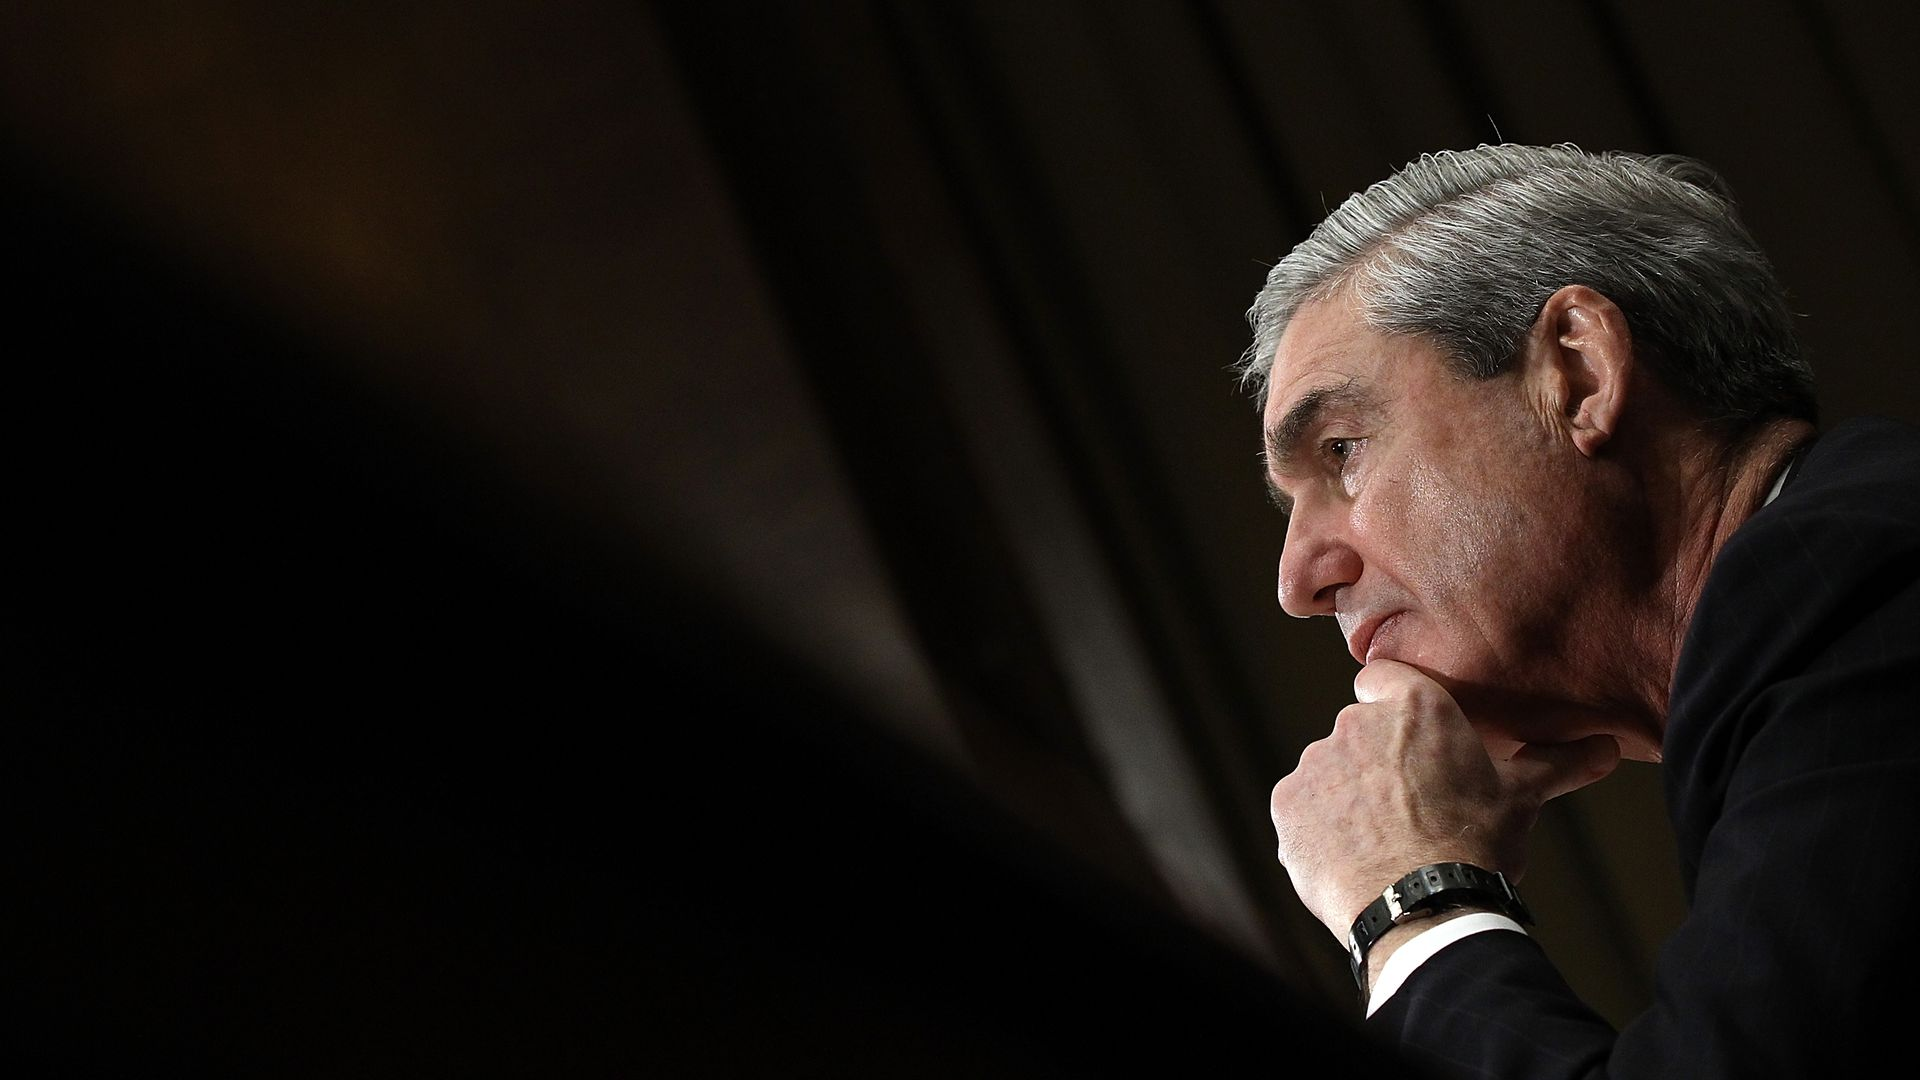 In this image, Robert Mueller looks to the left while resting his chin on his hand.